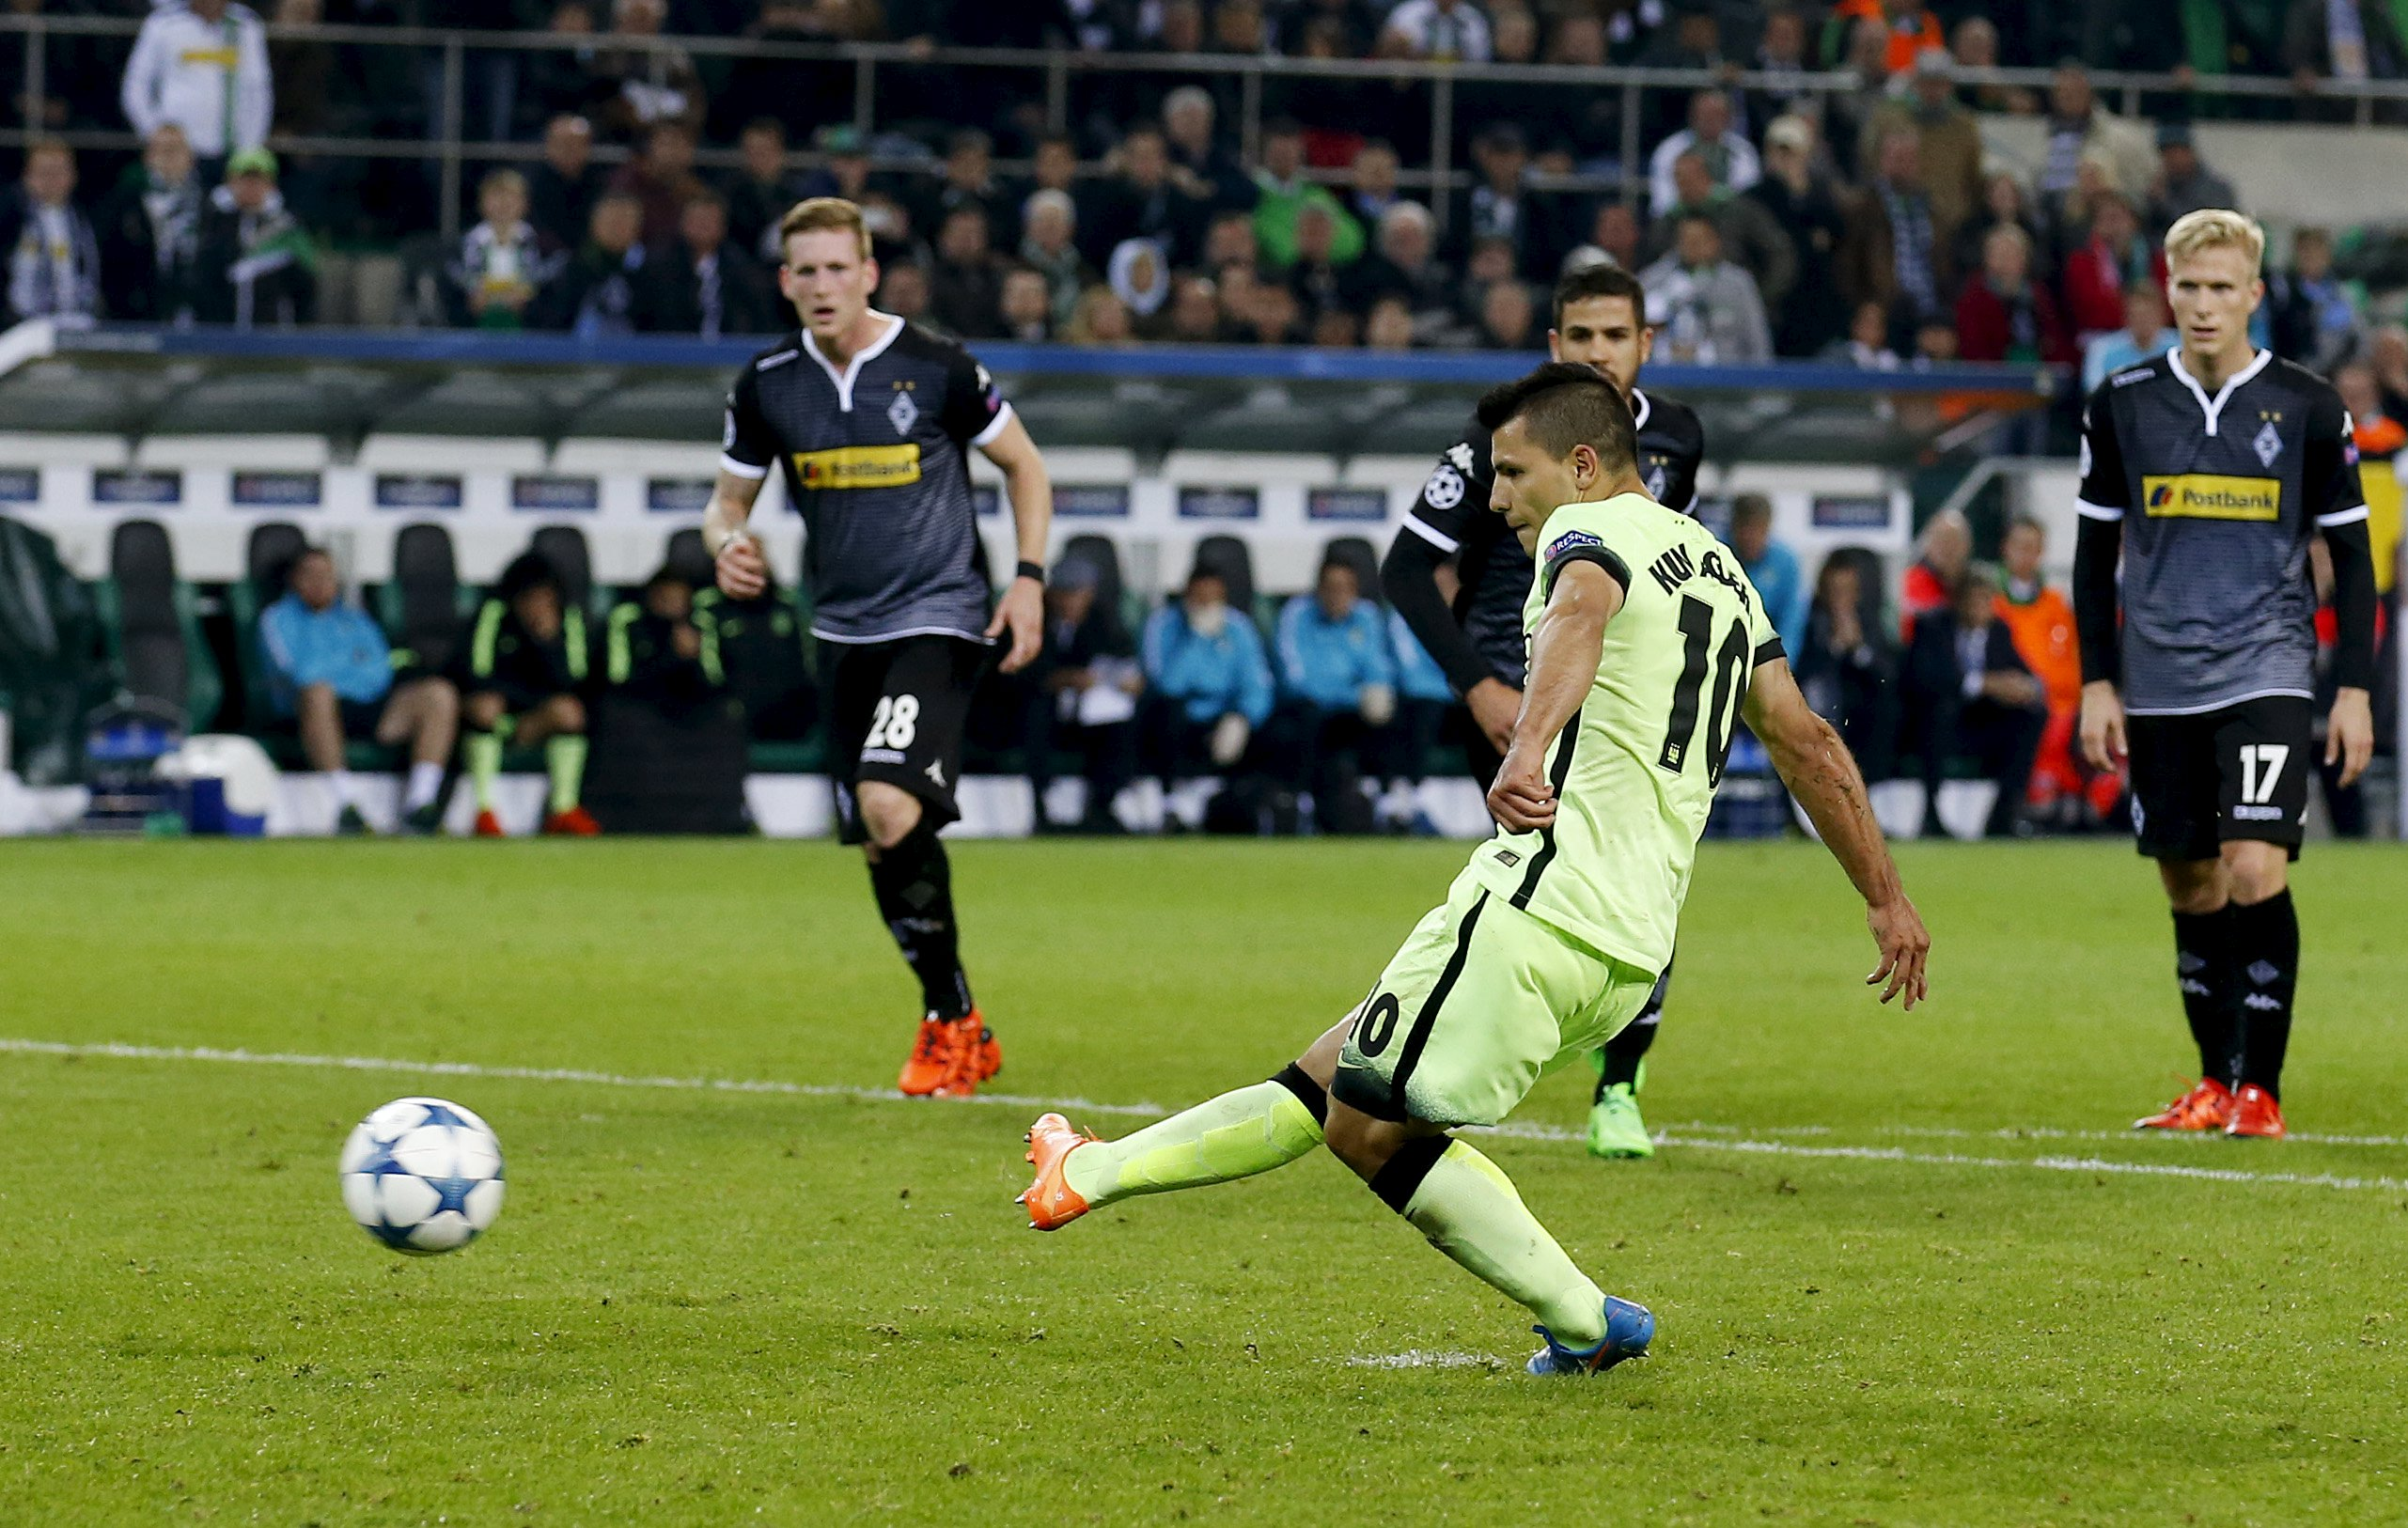 Football - Borussia Monchengladbach v Manchester City - UEFA Champions League Group Stage - Group D - Stadion im Borussia-Park, Monchengladbach, Germany - 30/9/15Manchester City's Sergio Aguero scores their second goal from the penalty spotAction Images via Reuters / Carl RecineLivepicEDITORIAL USE ONLY.       TPX IMAGES OF THE DAY